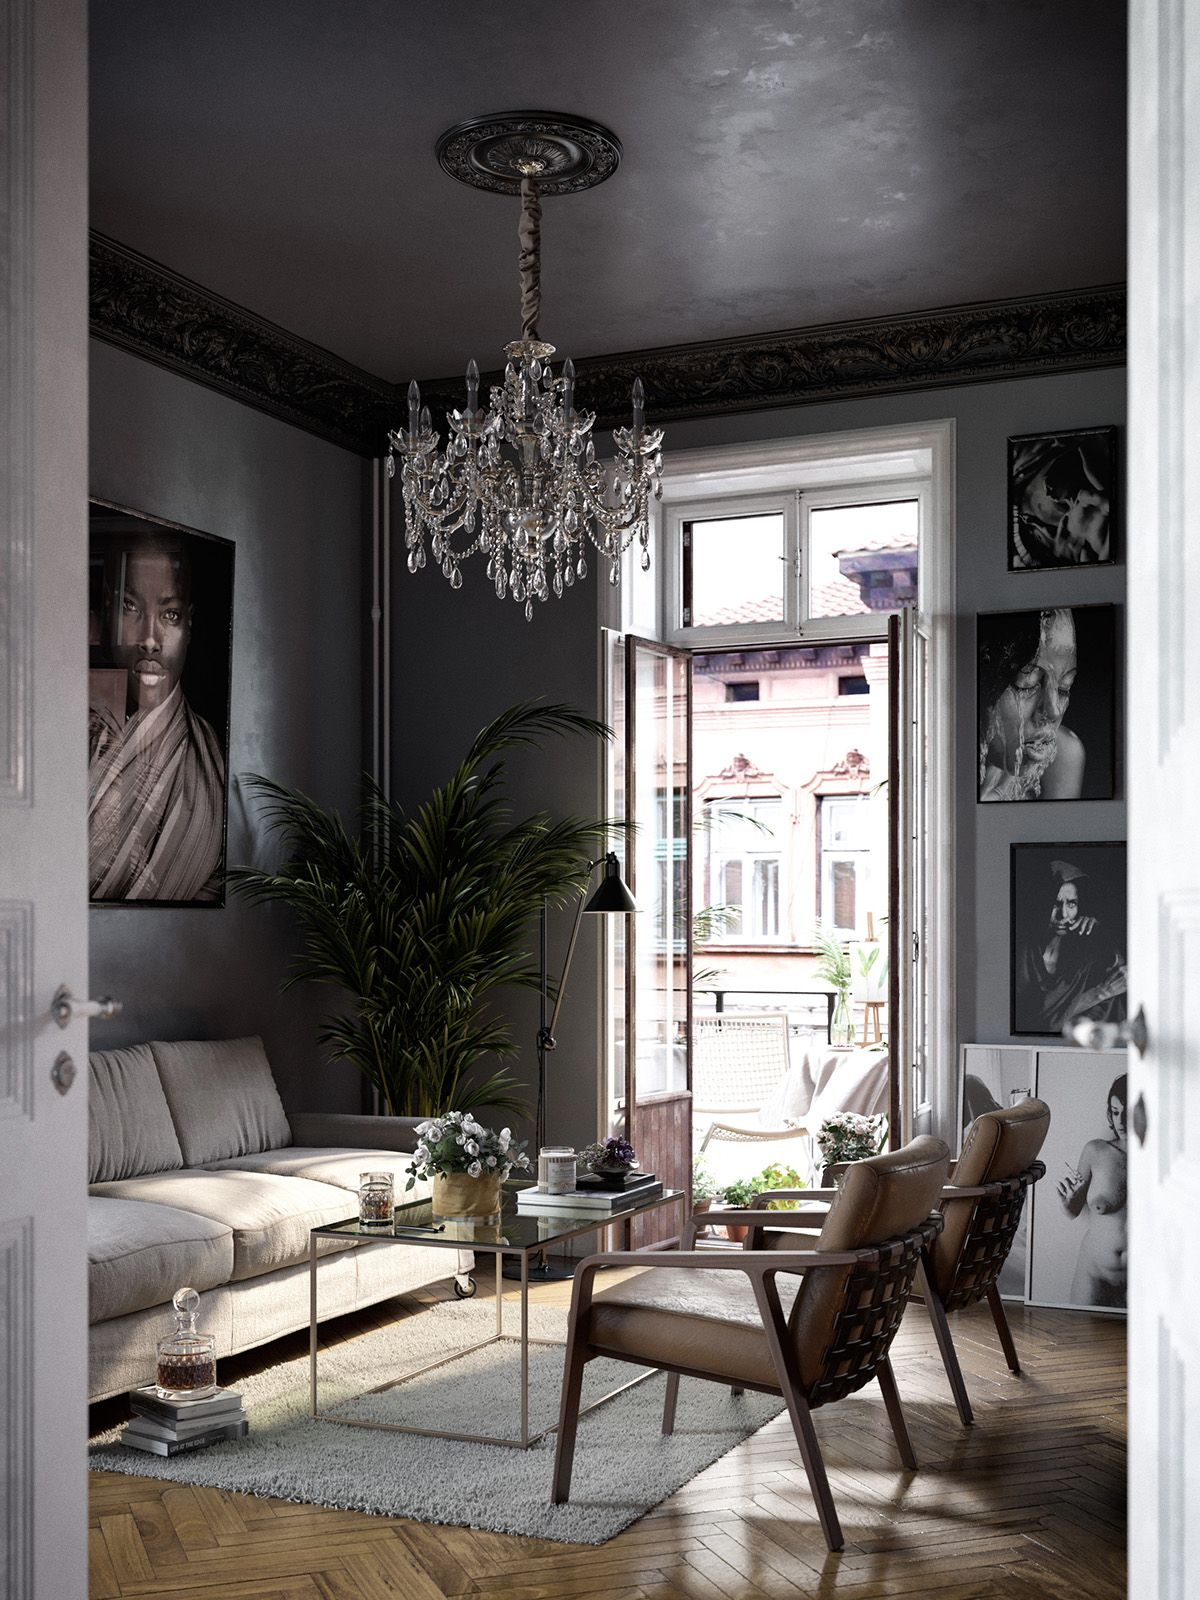 Decordemon the blog  daily dose of stunning interiors inspiration boards and design also rh pinterest